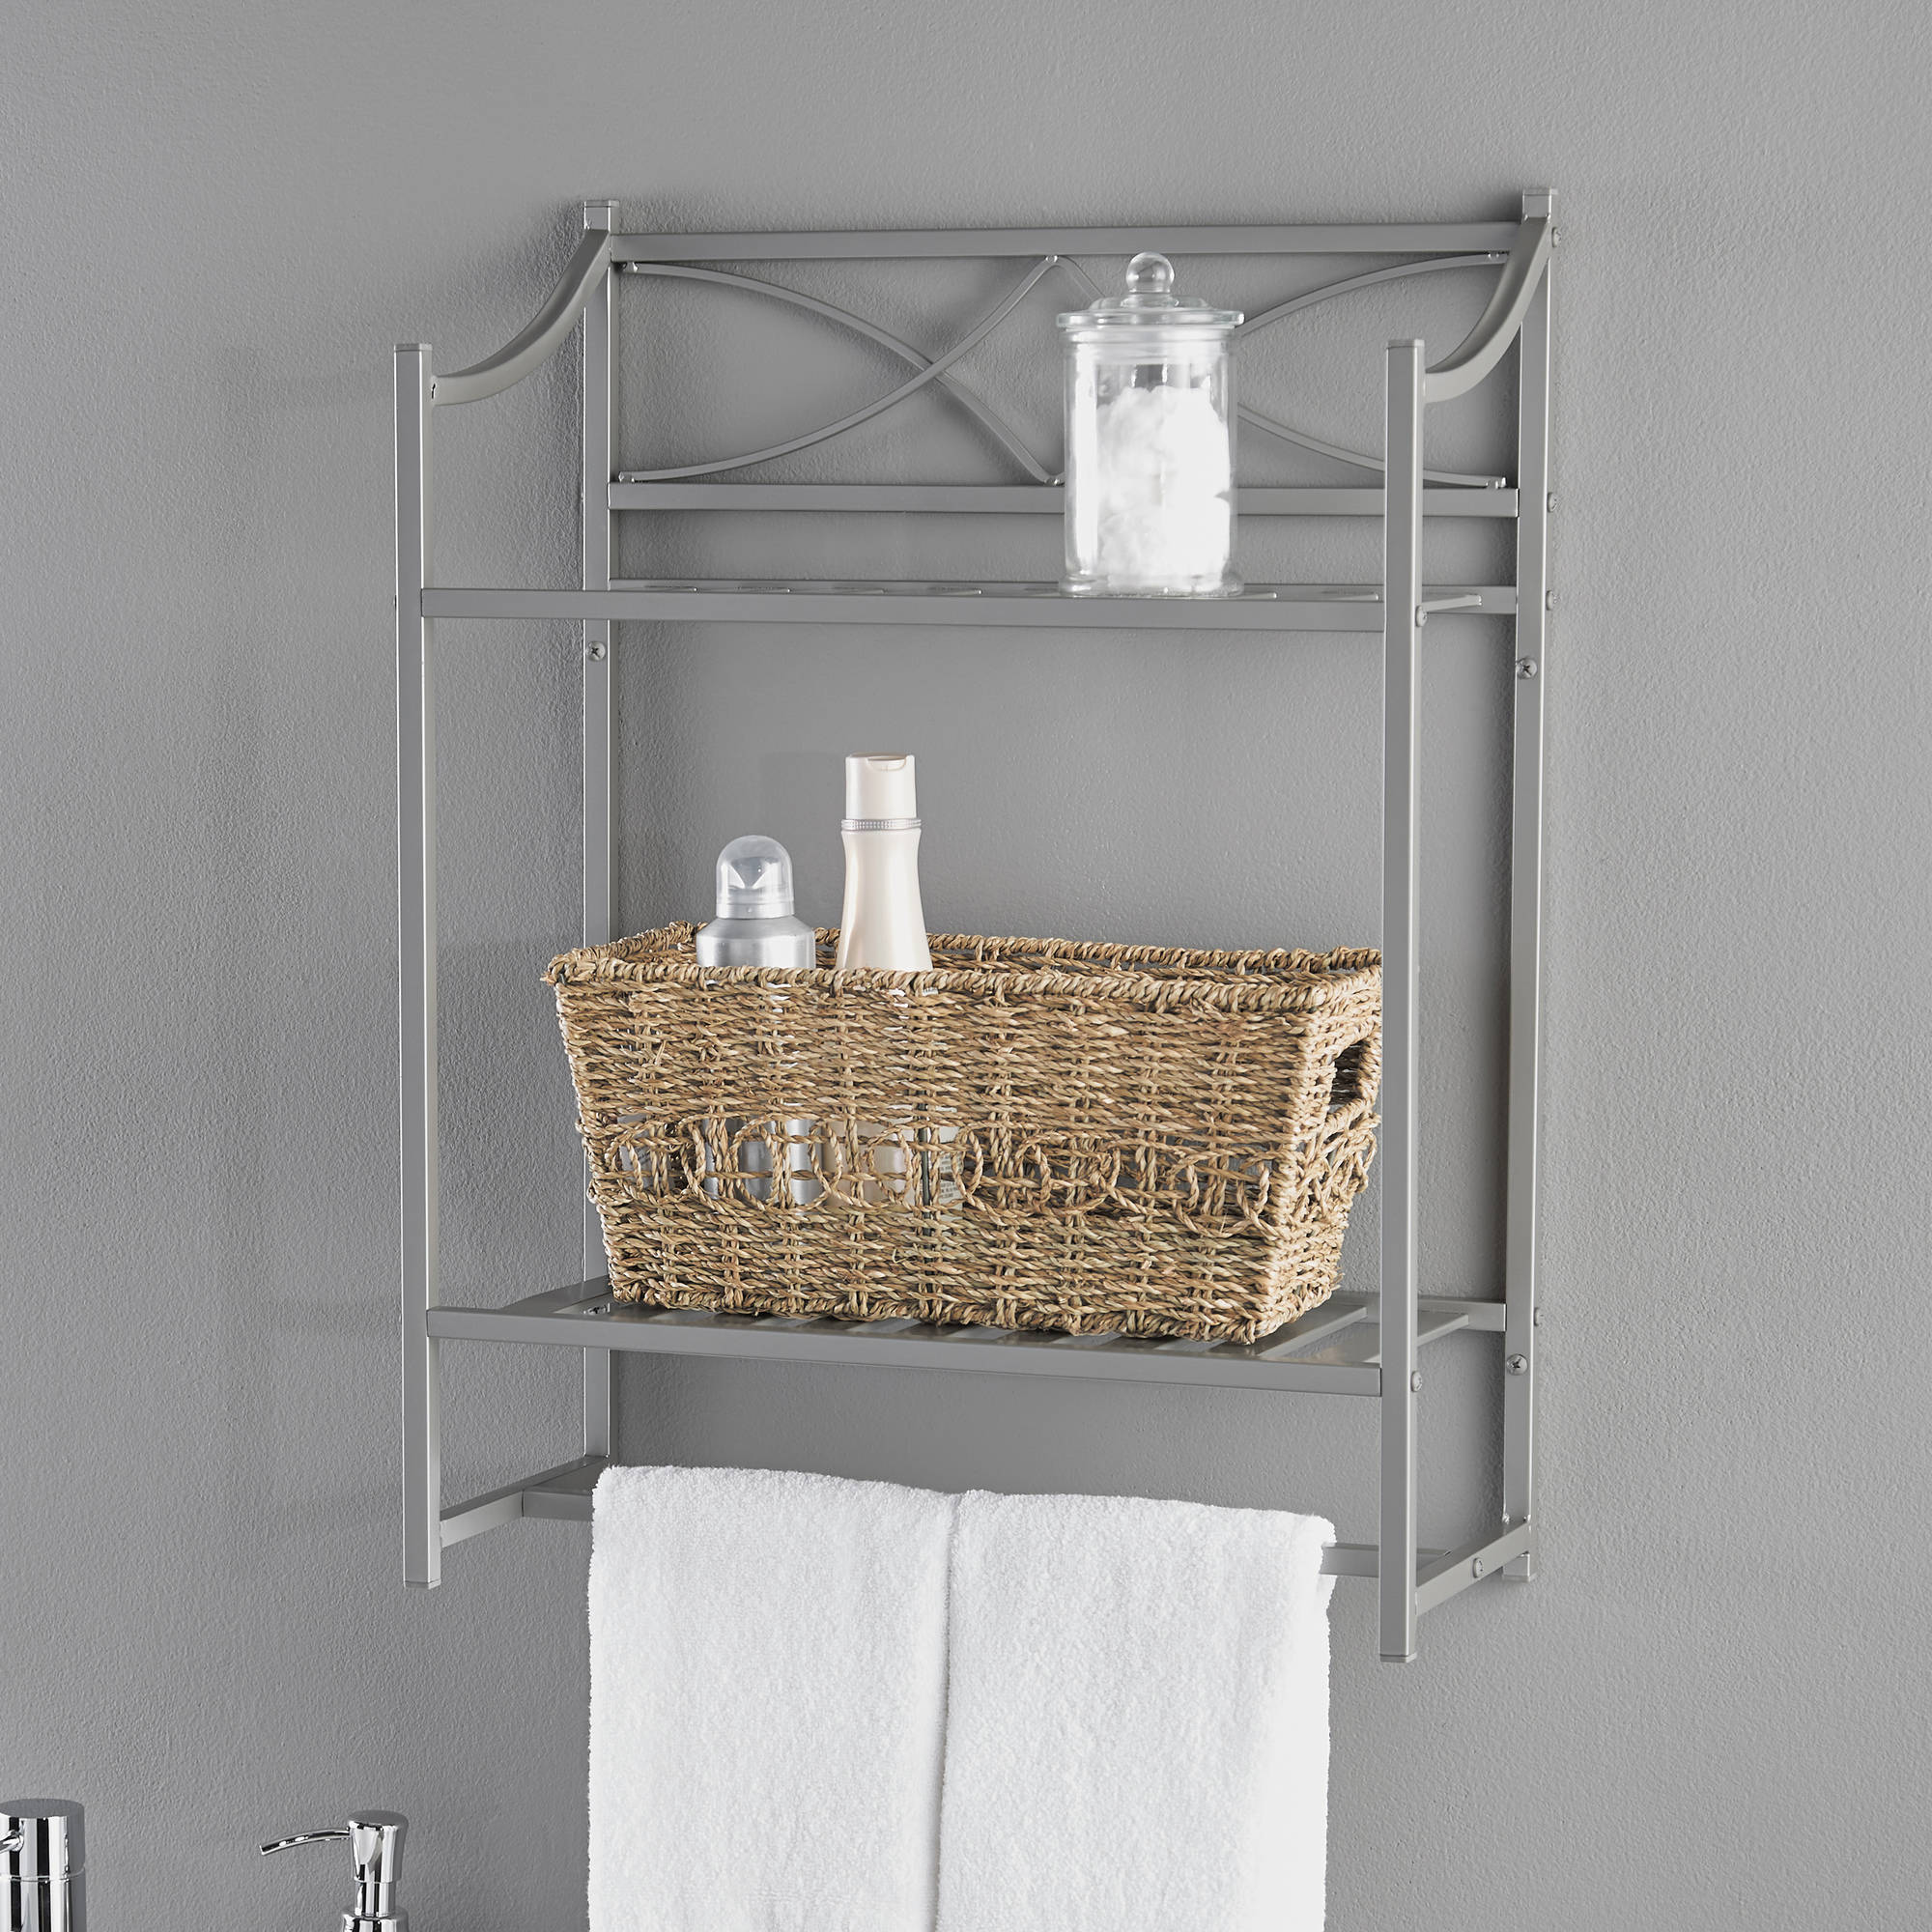 Bathroom Wall Shelf Amusing Chapter Lexington Park Bathroom Wall Shelf Satin Nickel  Walmart Design Inspiration